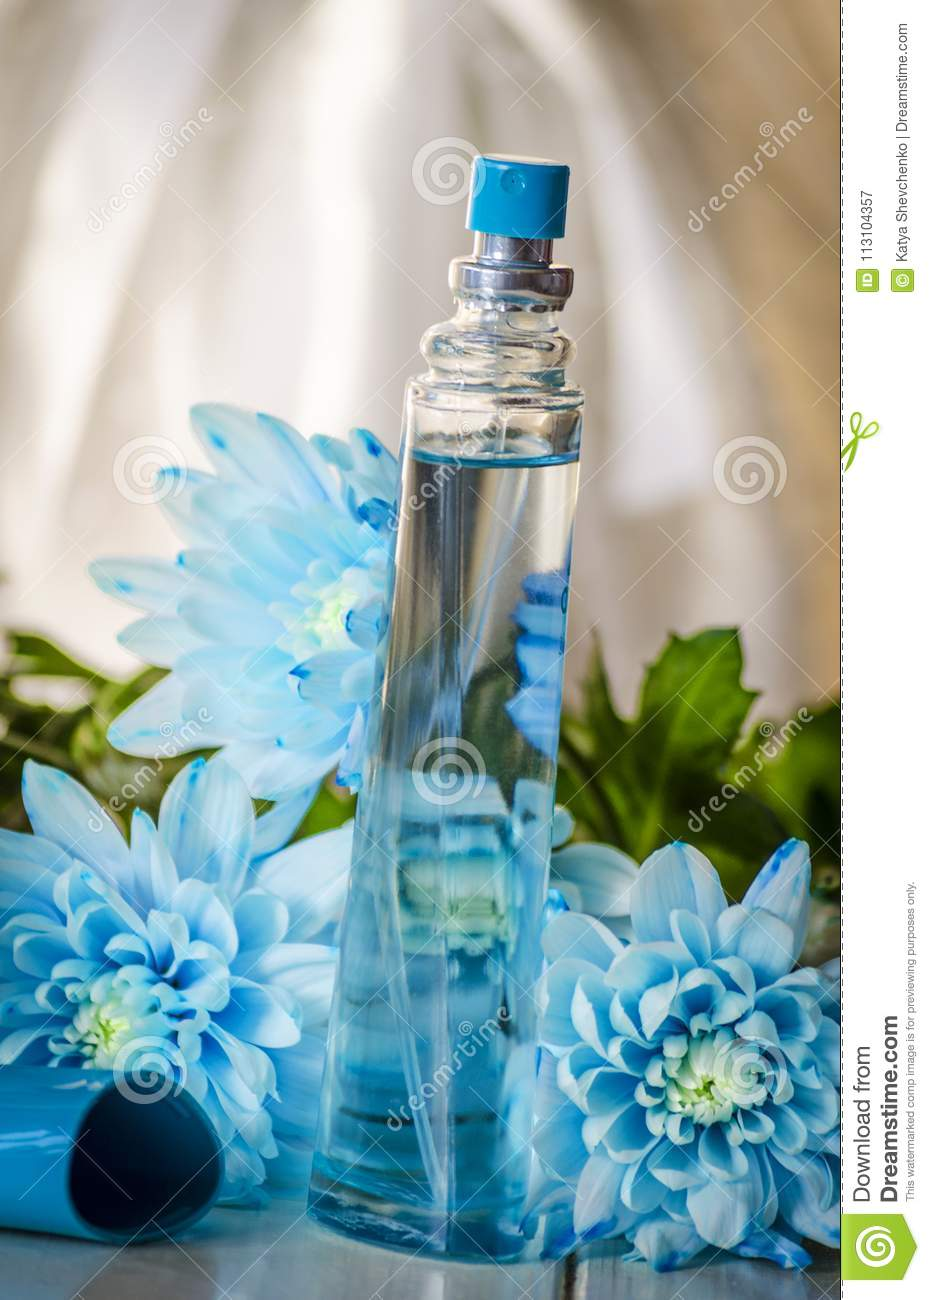 Perfume bottle on a background of flowers stock image image of download perfume bottle on a background of flowers stock image image of blue concept izmirmasajfo